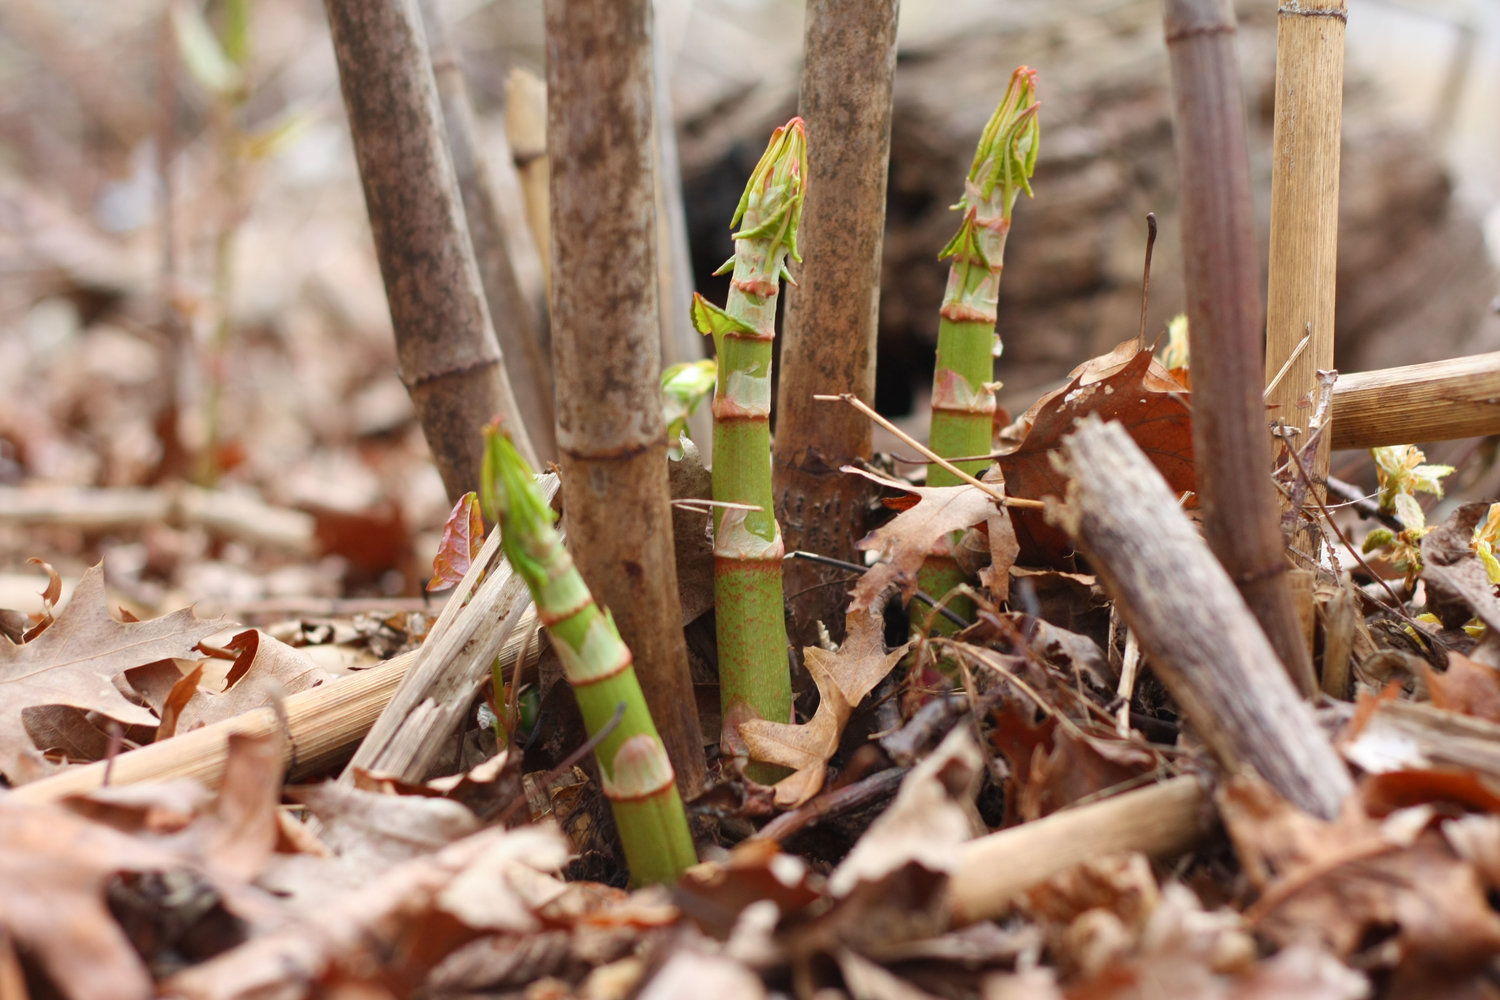 Japanese Knotweed dies back each fall and sends up new shoots in the springtime. The shoots are tasty and cutting them continually is one way to weaken the rhizomes under the surface.